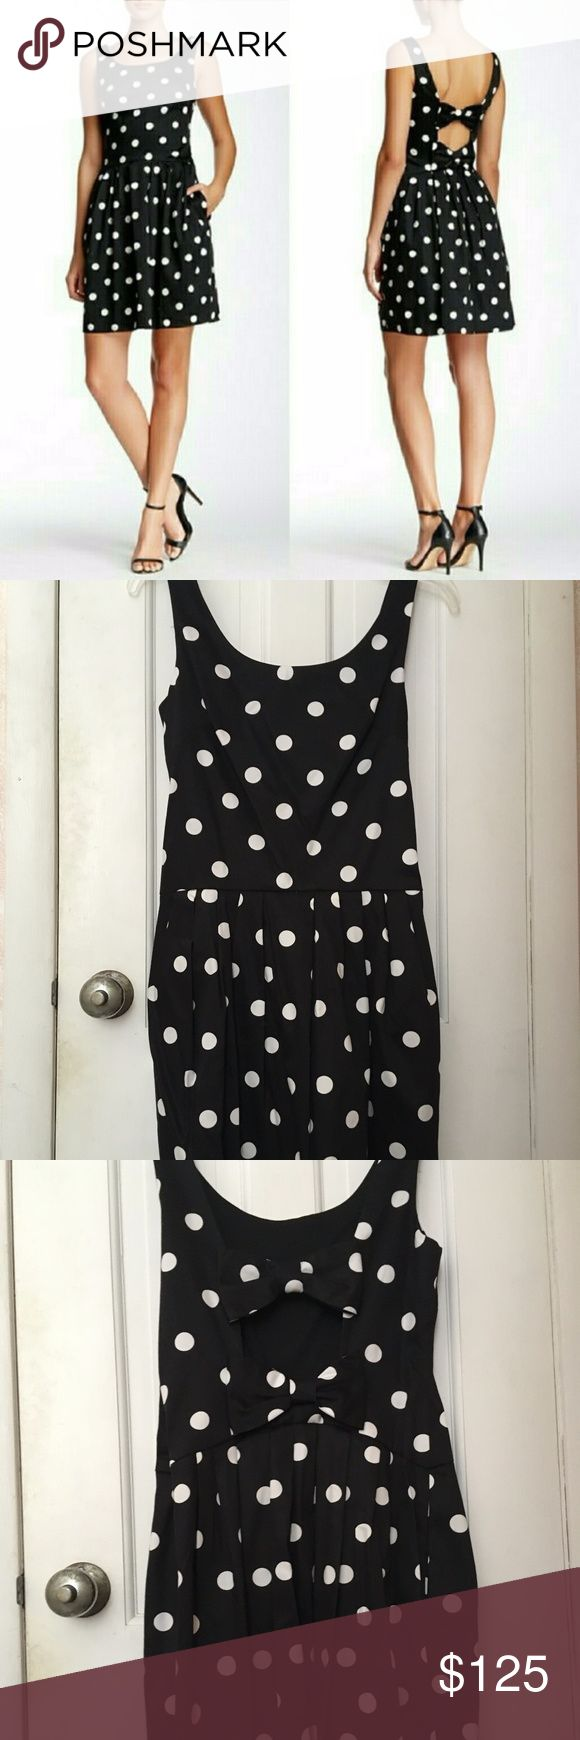 Betsey Johnson Black & White Polka Dot Dress (NWT) Brand new dress, with tags.  Thoughtfully designed polka-dot summer dress with an open back broken up by two oversized bows - too cute!  The skirt is pleated but still hugs the legs somewhat (not totally a-line).  A bit too large for me.  New, unworn condition.  Shell: 97% cotton, 3% spandex   Lining:100% polyester  Dry Clean Betsey Johnson Dresses